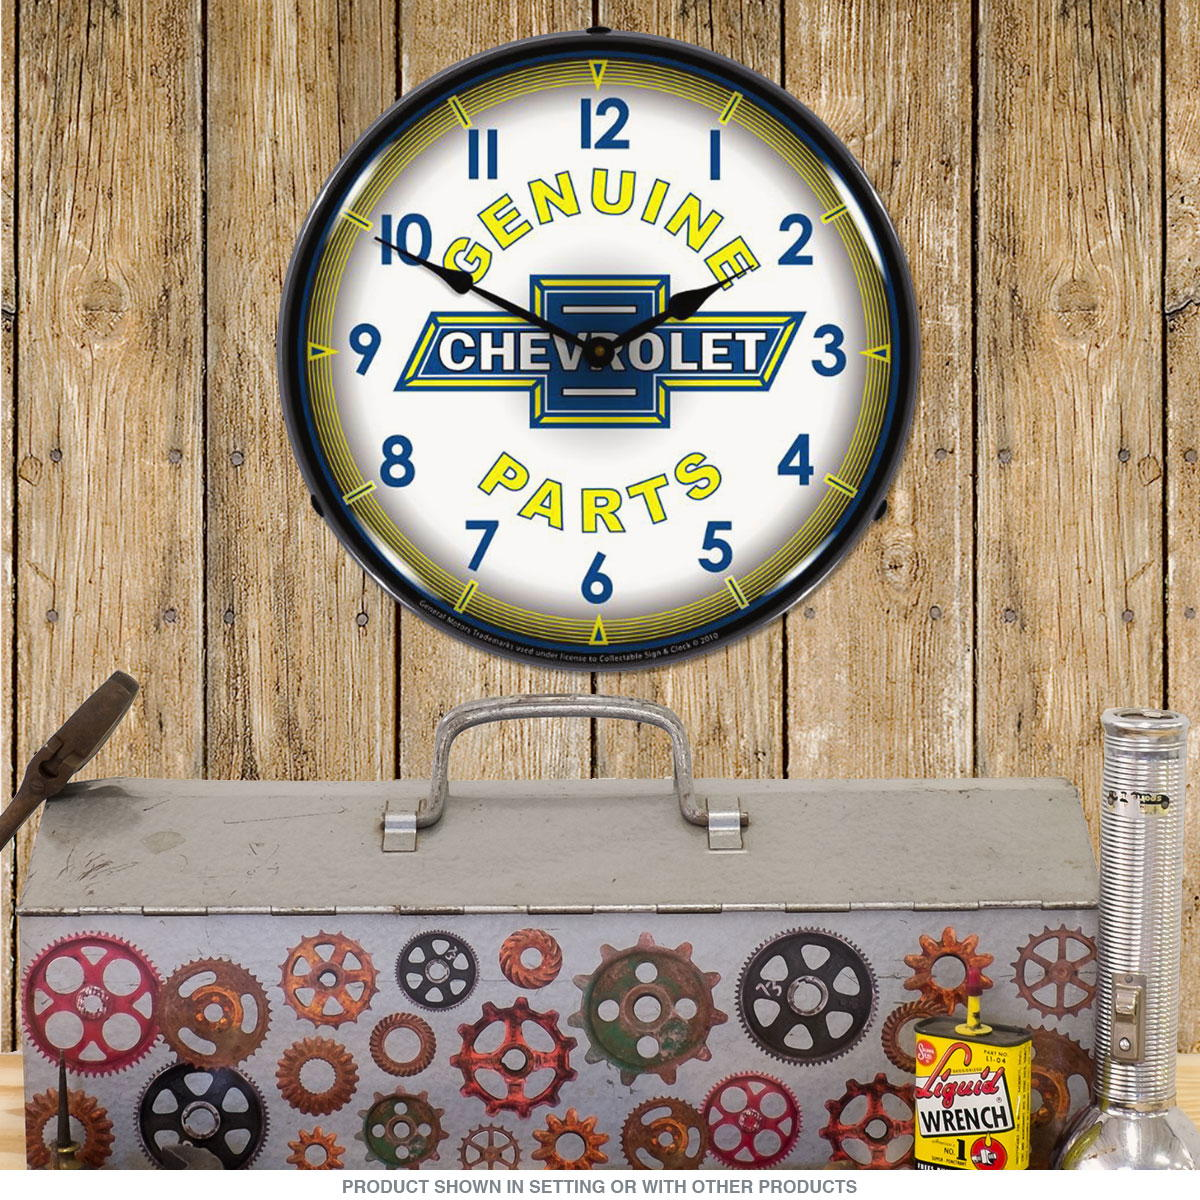 Chevrolet Genuine Parts Light Up Garage Clock